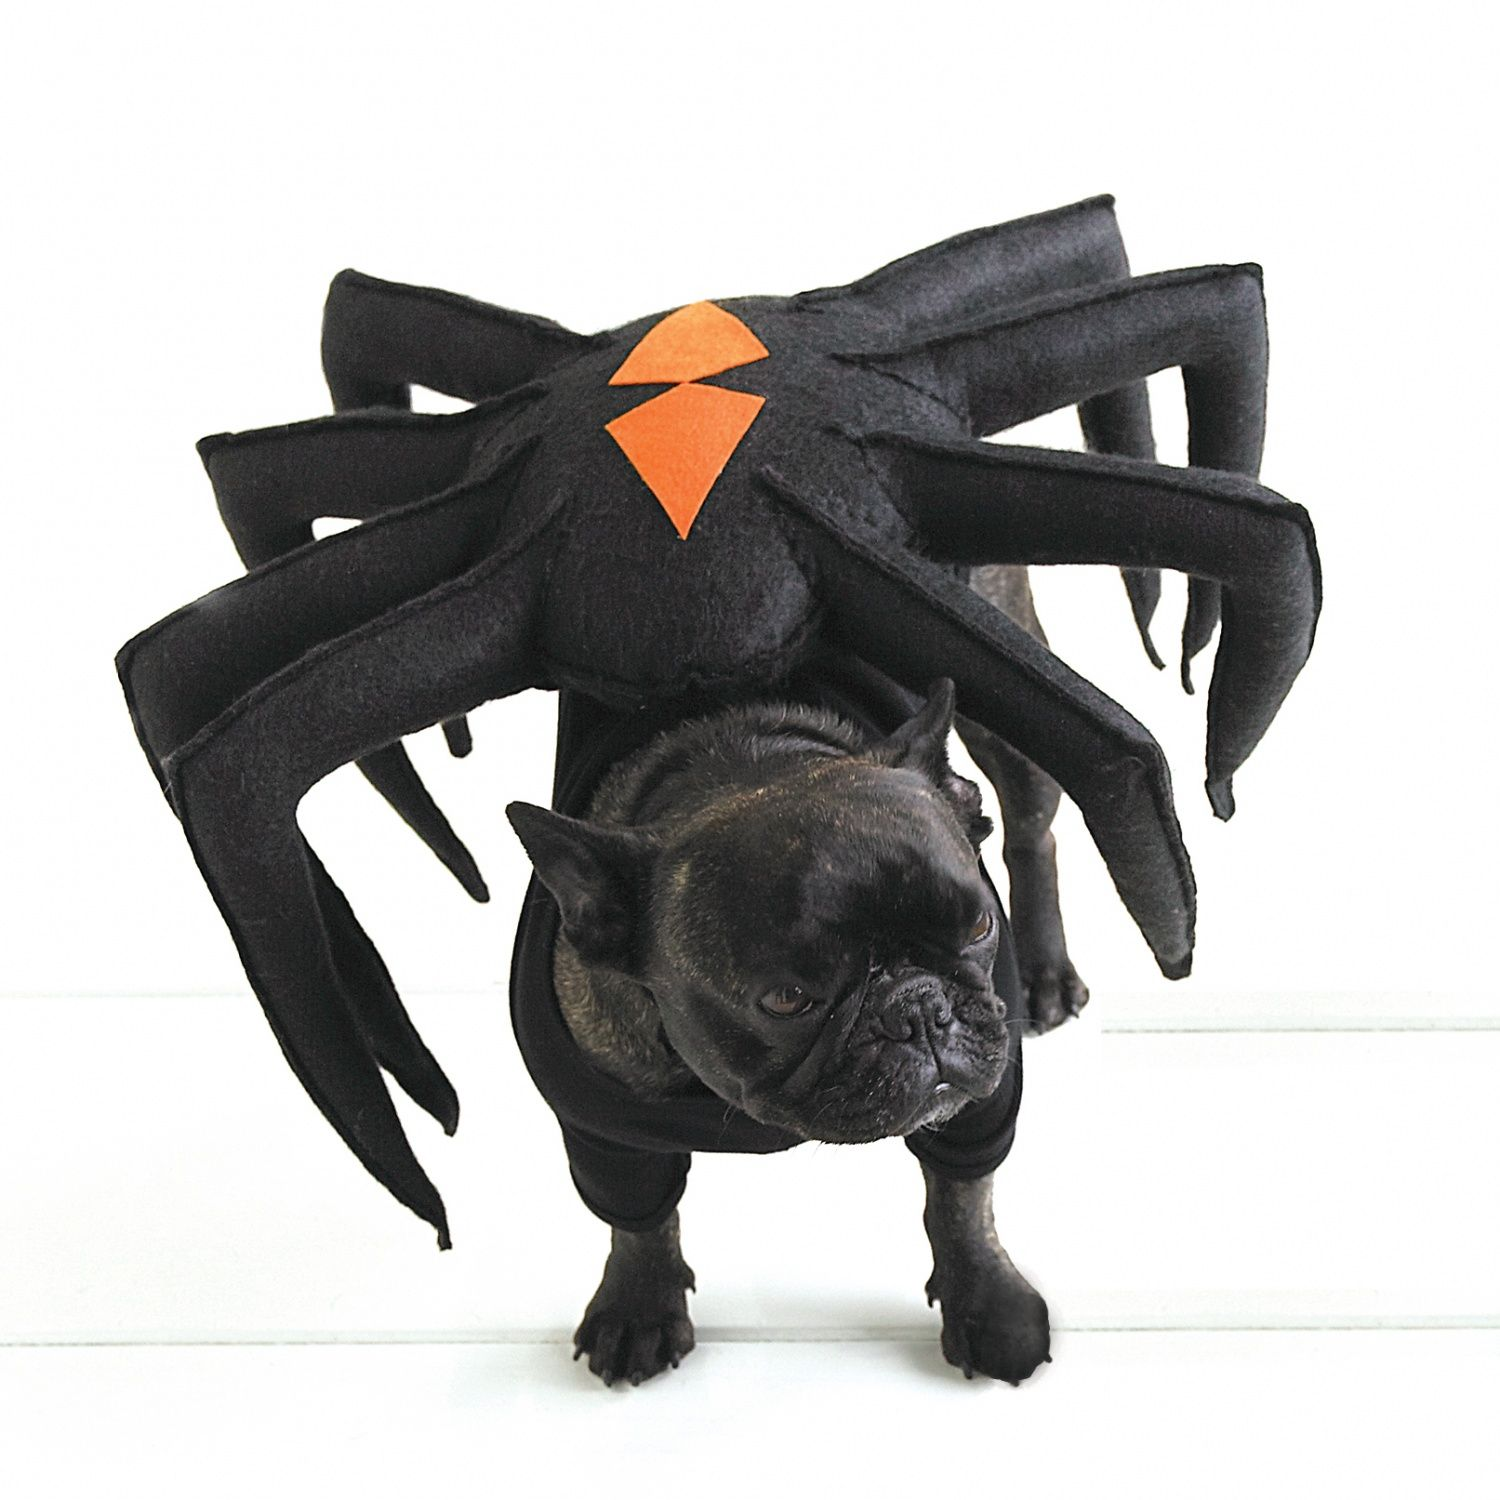 Spider Dog Pet Costume Dog Halloween Costumes Pet Halloween